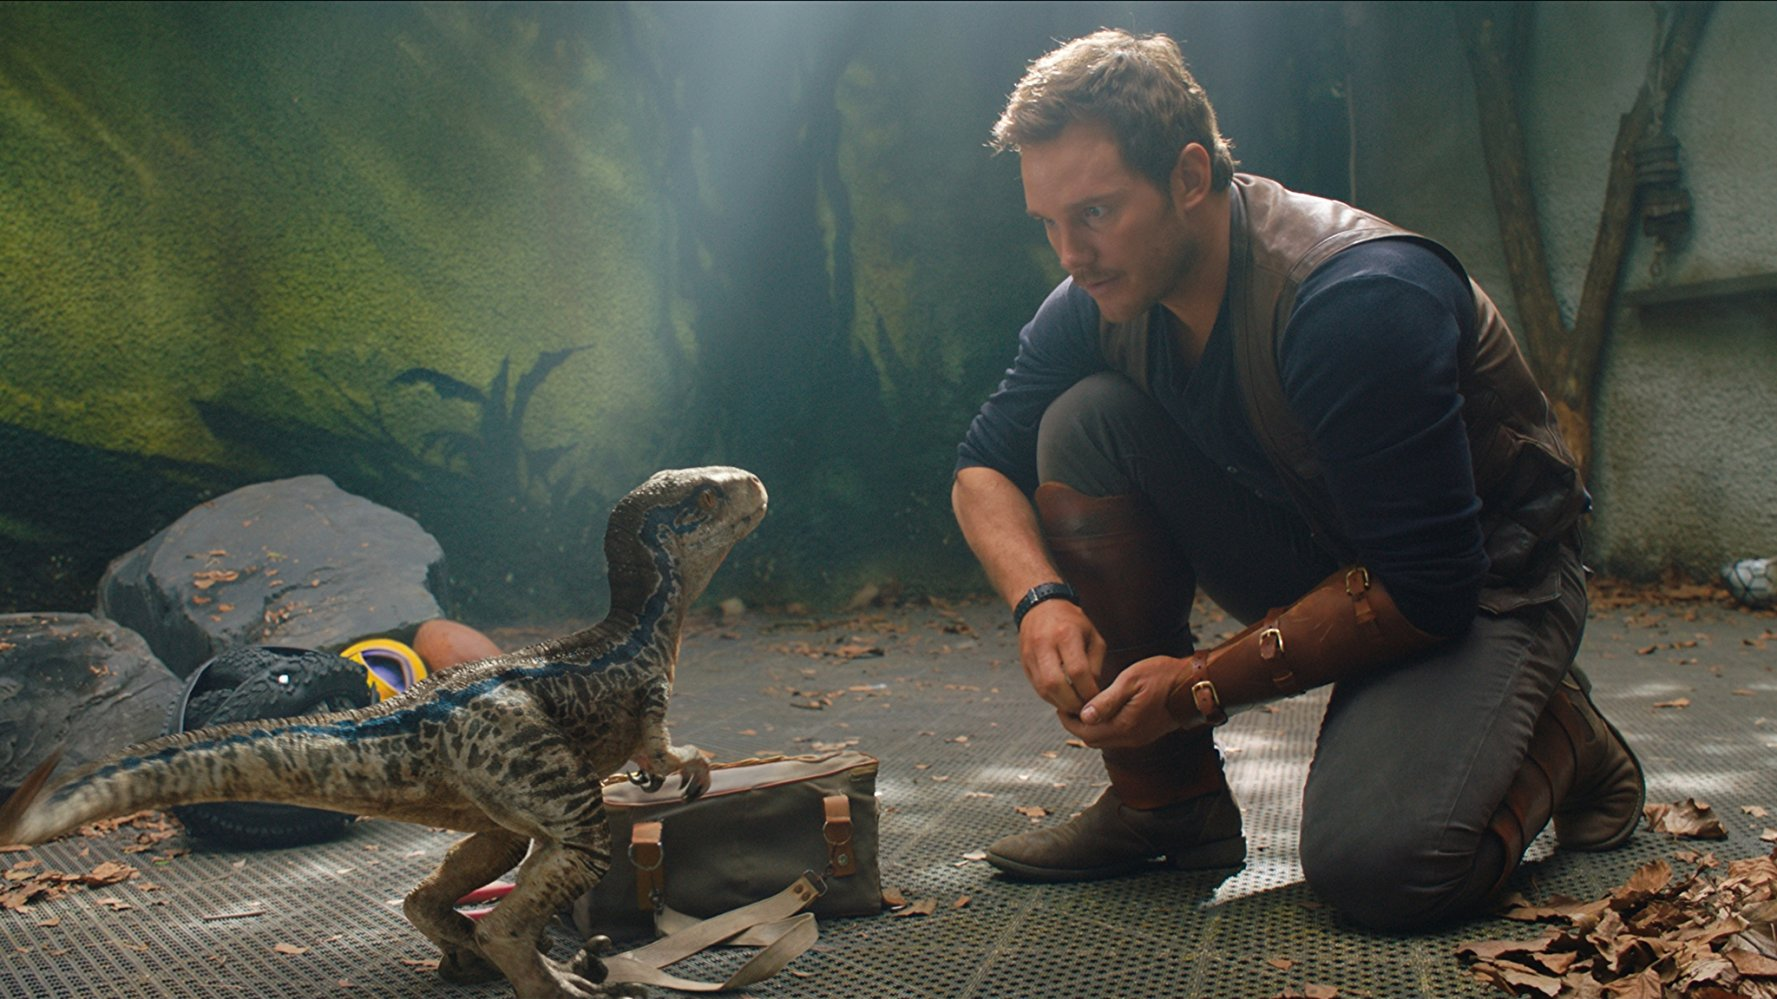 5 things to know about Jurassic World: Fallen Kingdom